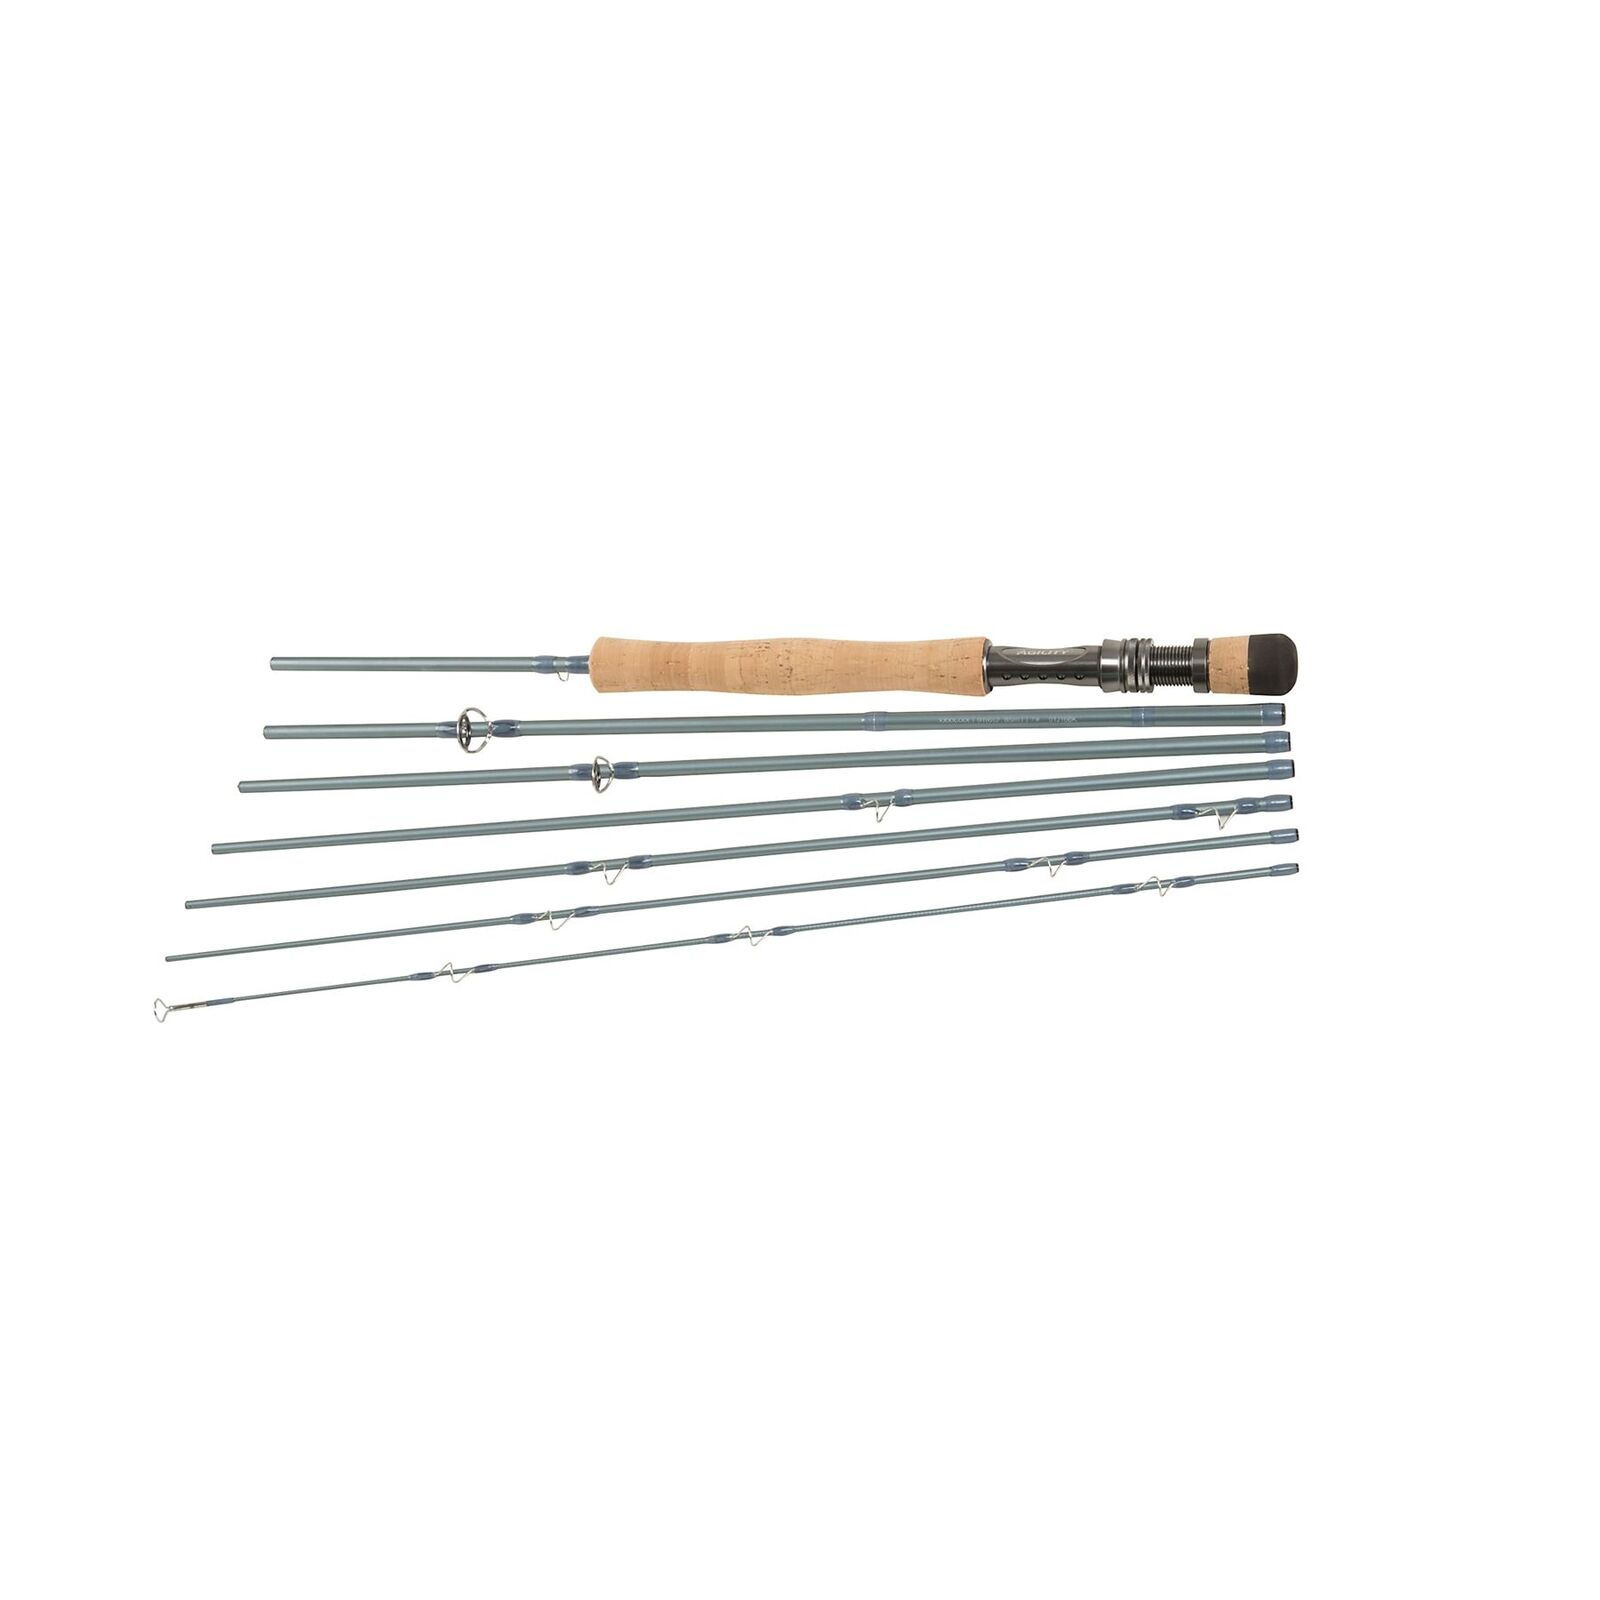 Shakespeare Agility 2 EXP Fly Rod 8ft 6